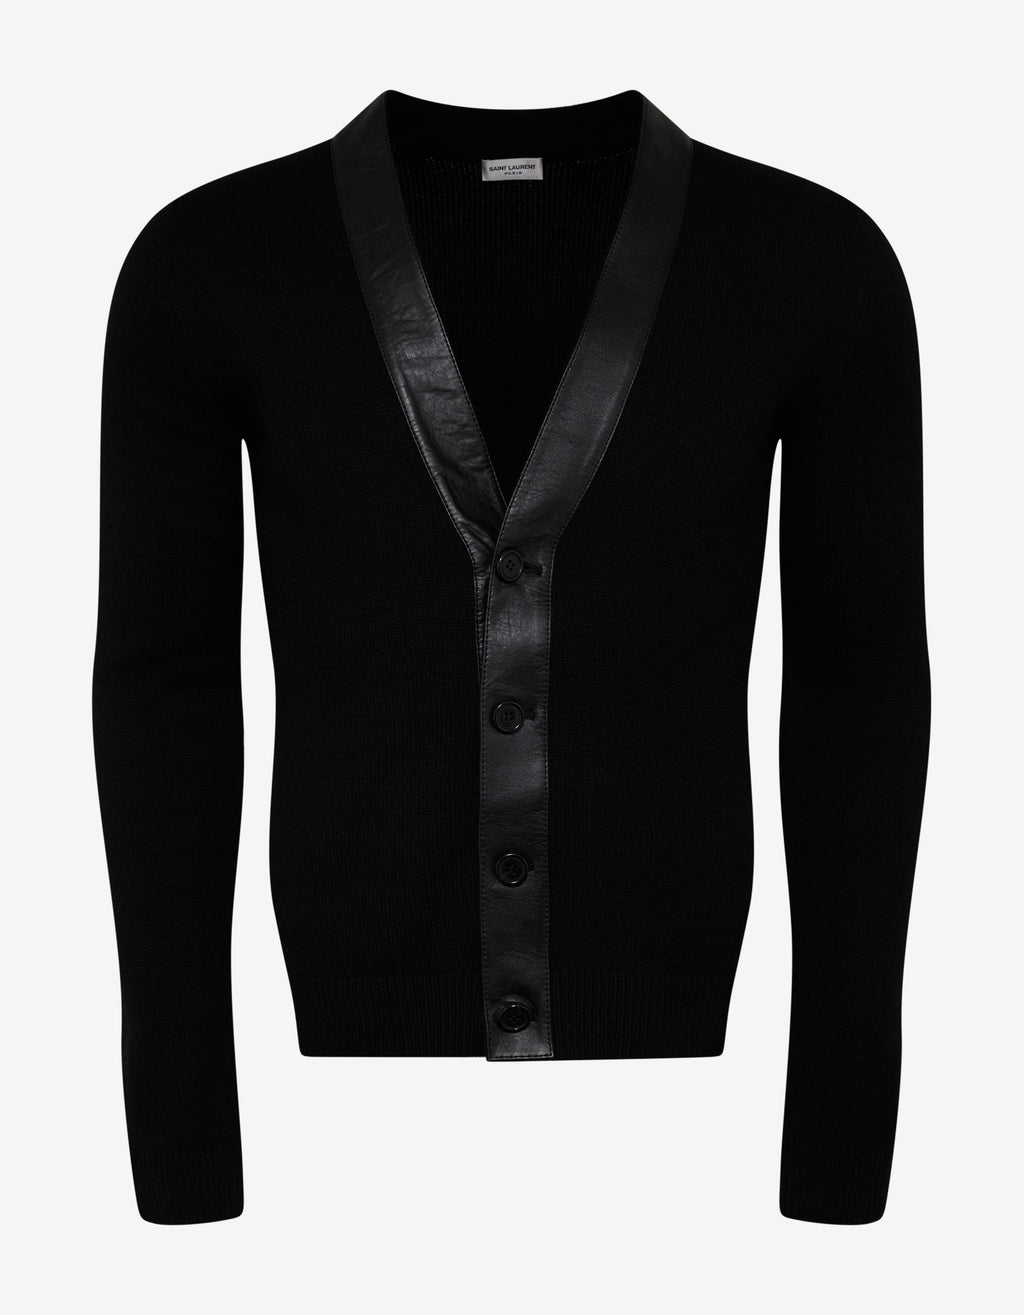 Black Cashmere Cardigan with Leather Trim